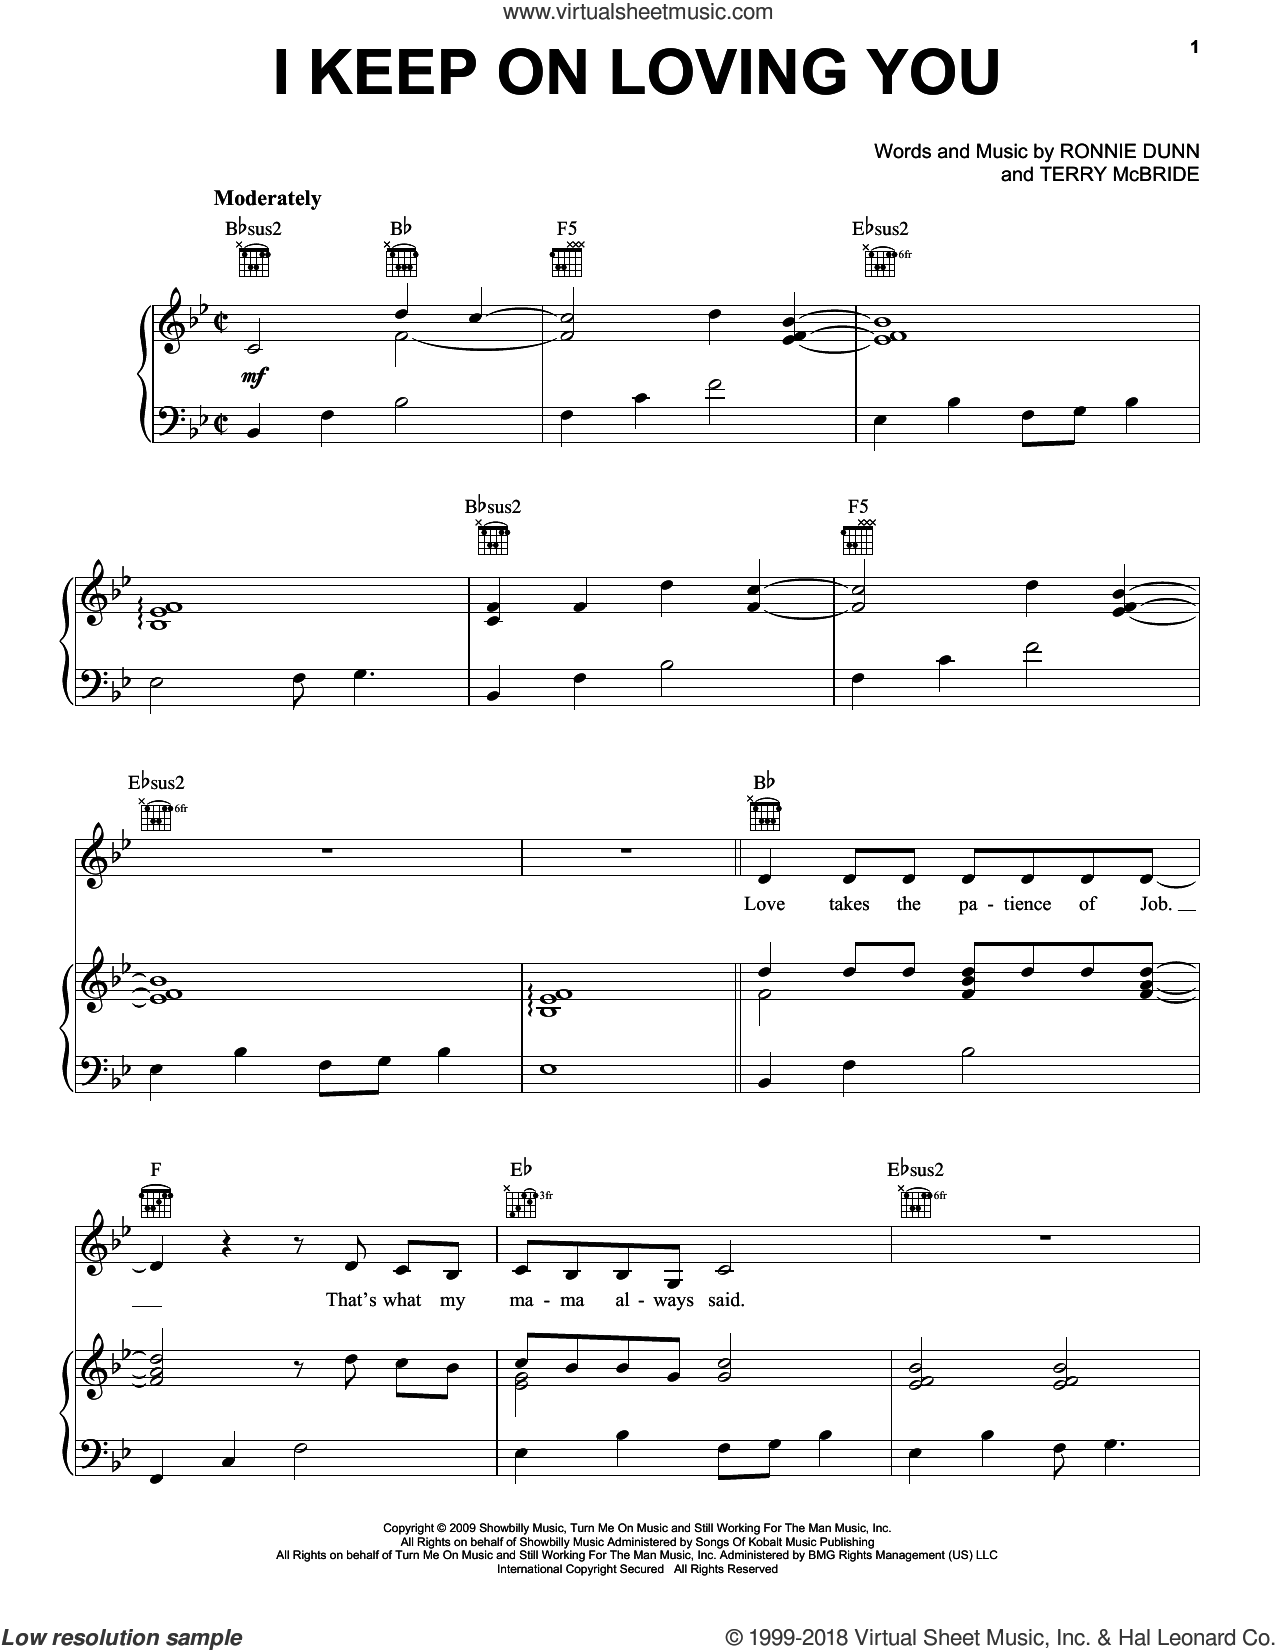 I Keep On Loving You sheet music for voice, piano or guitar by Reba McEntire, Ronnie Dunn and Terry McBride. Score Image Preview.